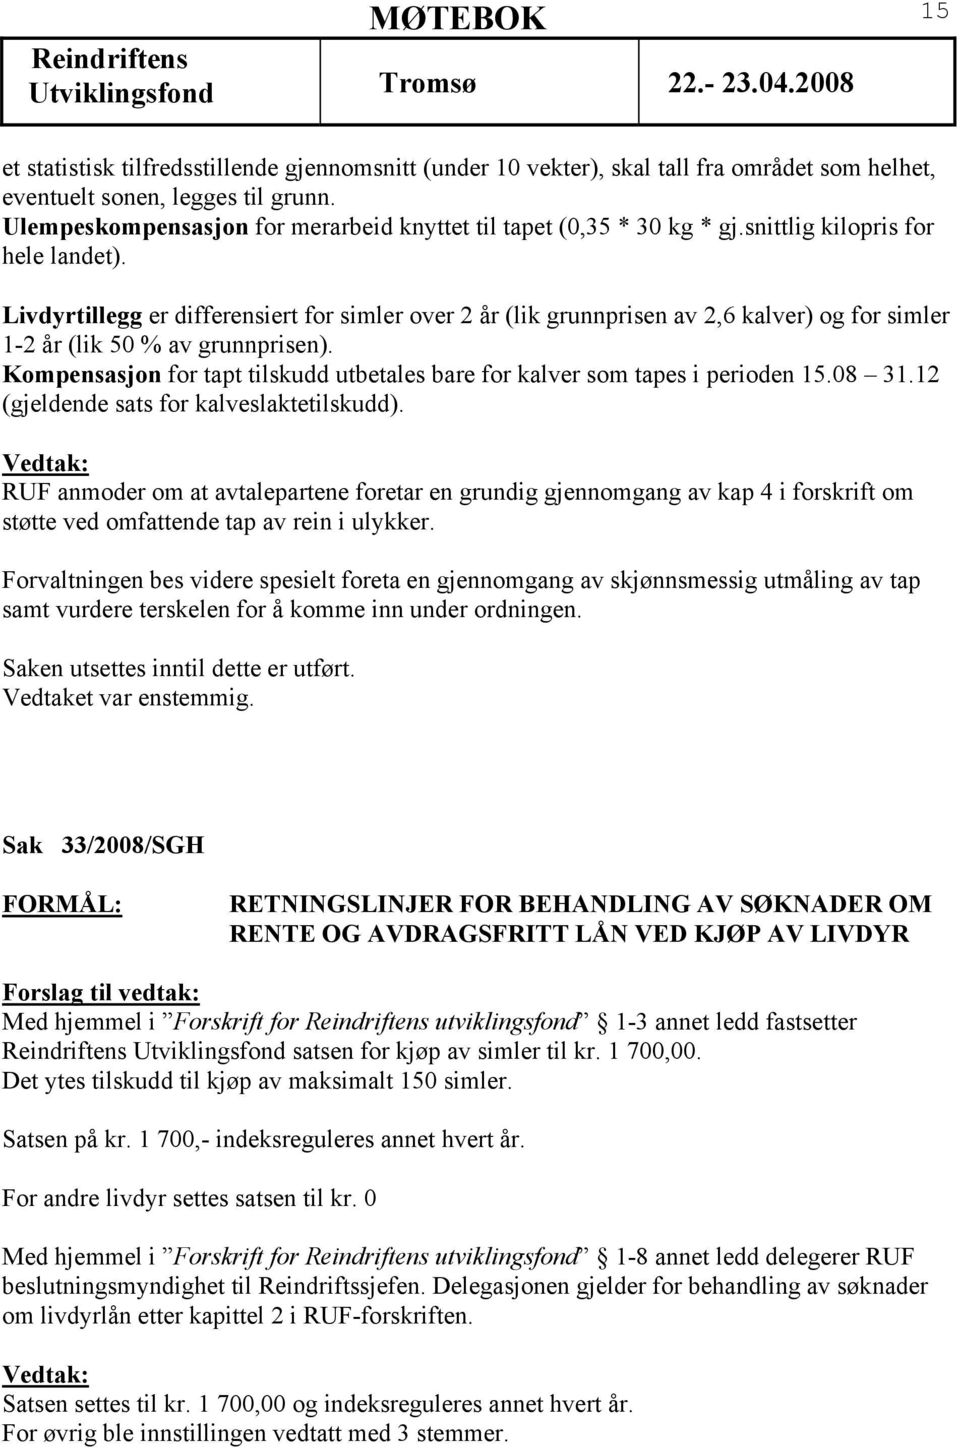 Livdyrtillegg er differensiert for simler over 2 år (lik grunnprisen av 2,6 kalver) og for simler 1-2 år (lik 50 % av grunnprisen).